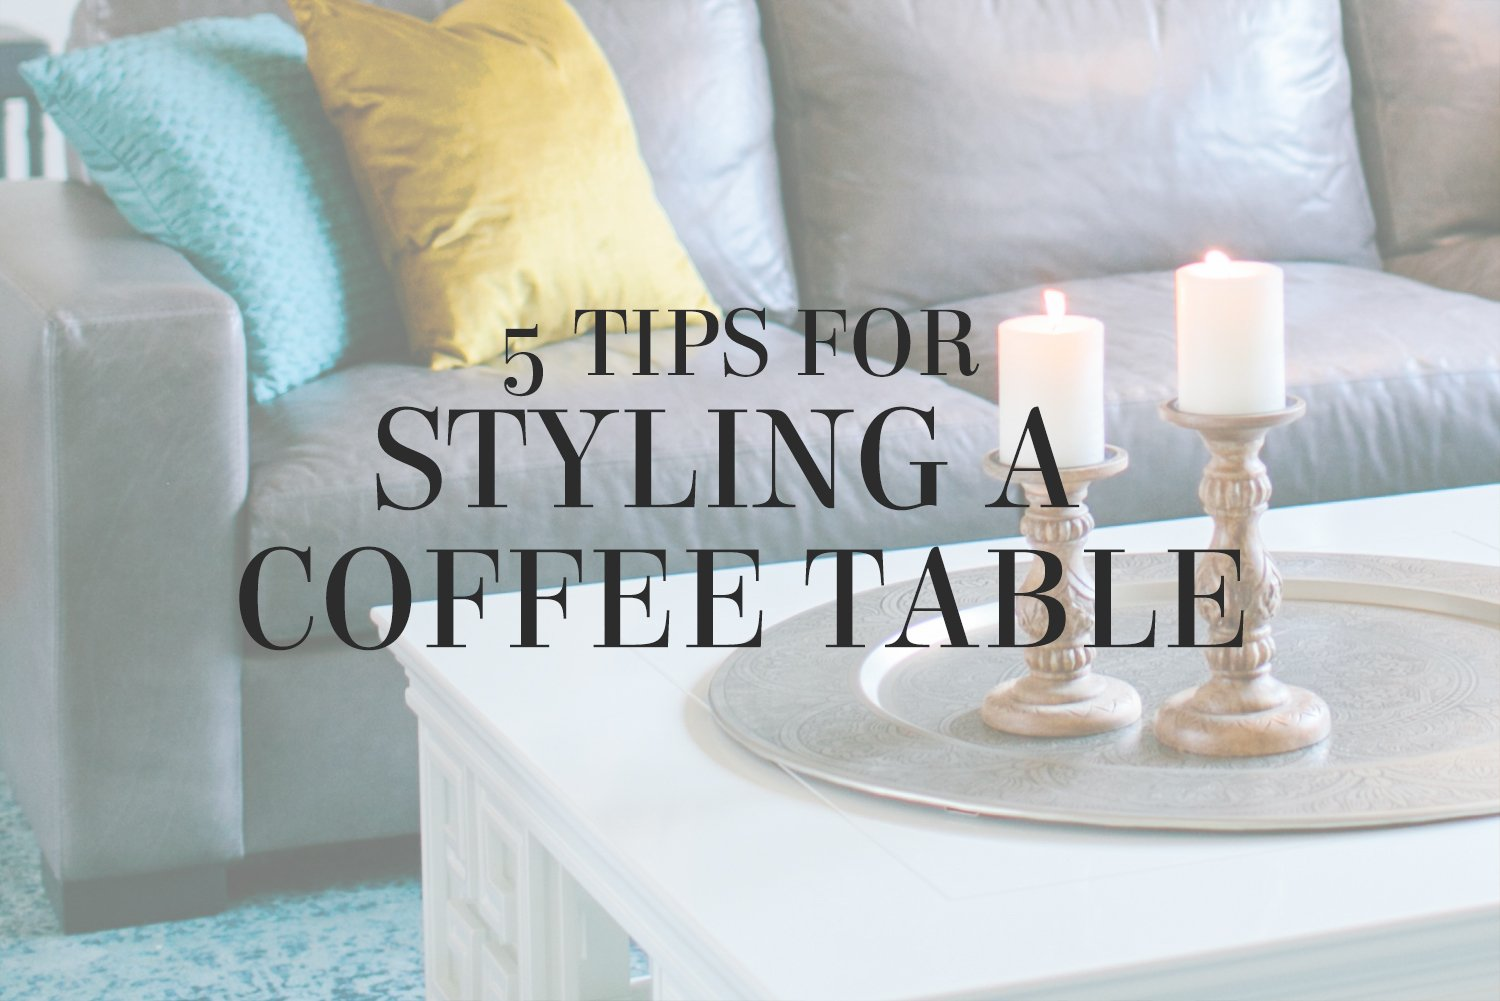 5 tips for styling a coffee table that looks awesome and has room for your coffee